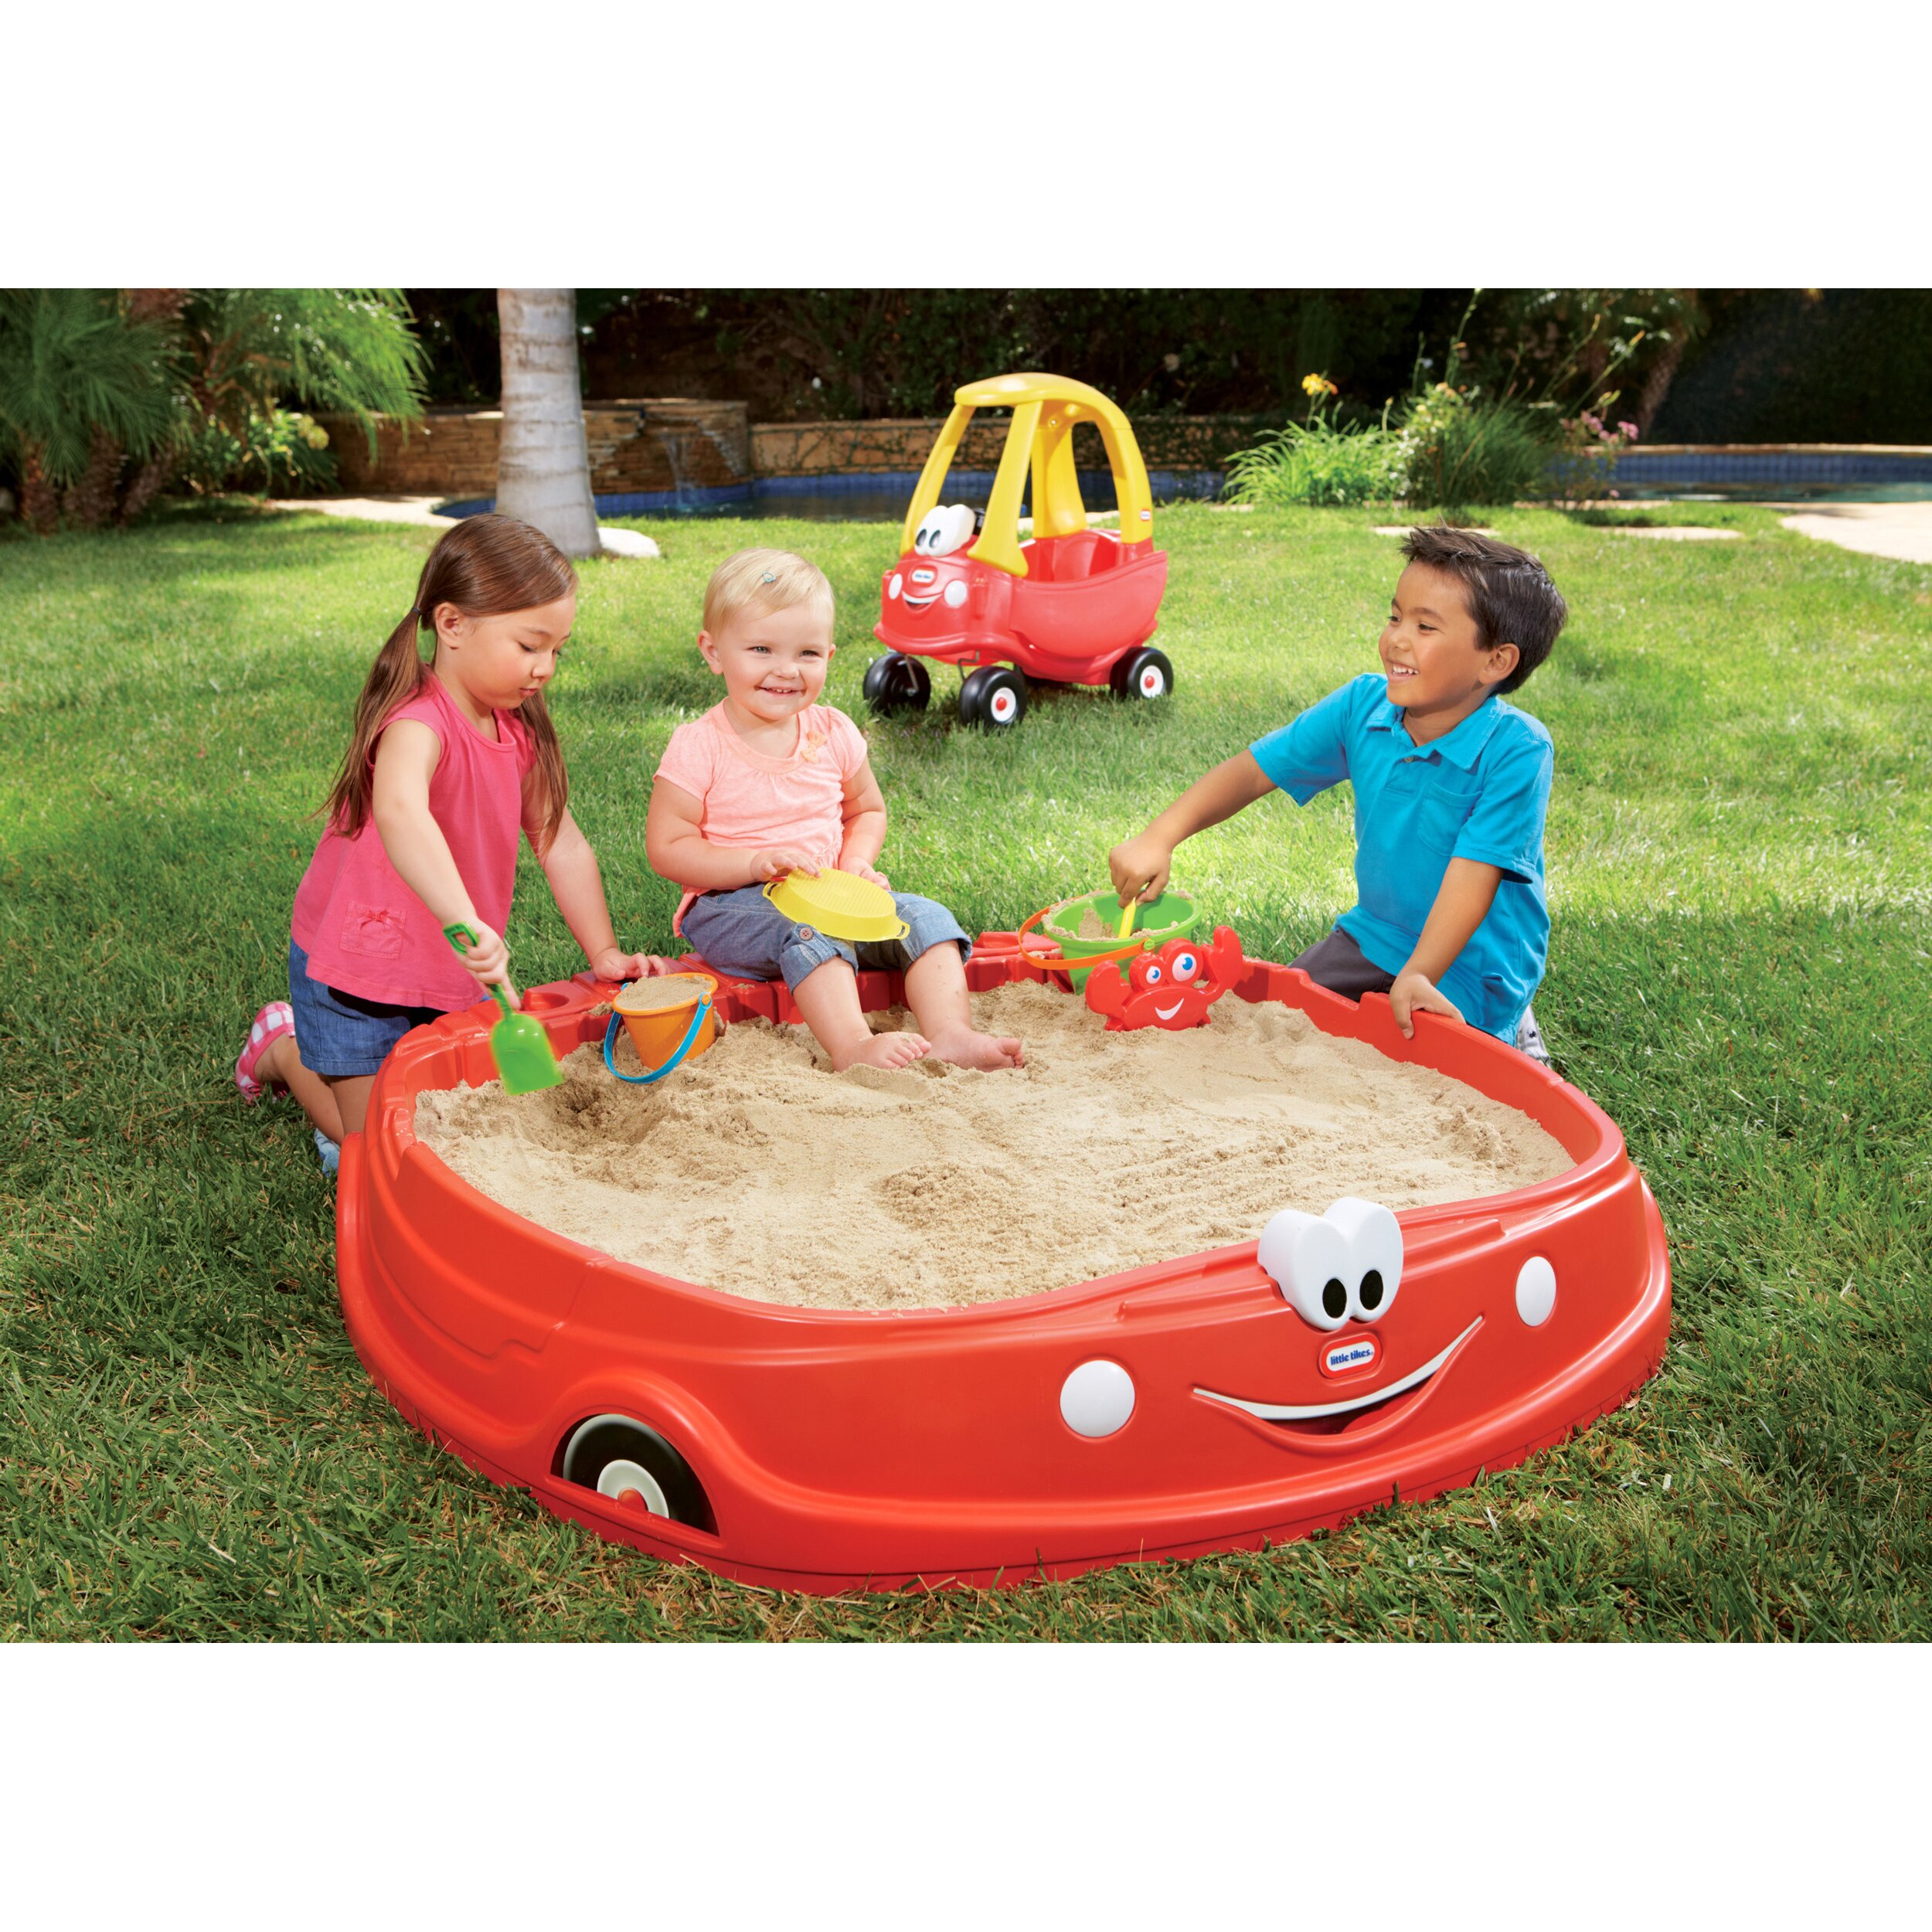 Little tikes cozy coupe rectangular sandbox for Little tikes 8 in 1